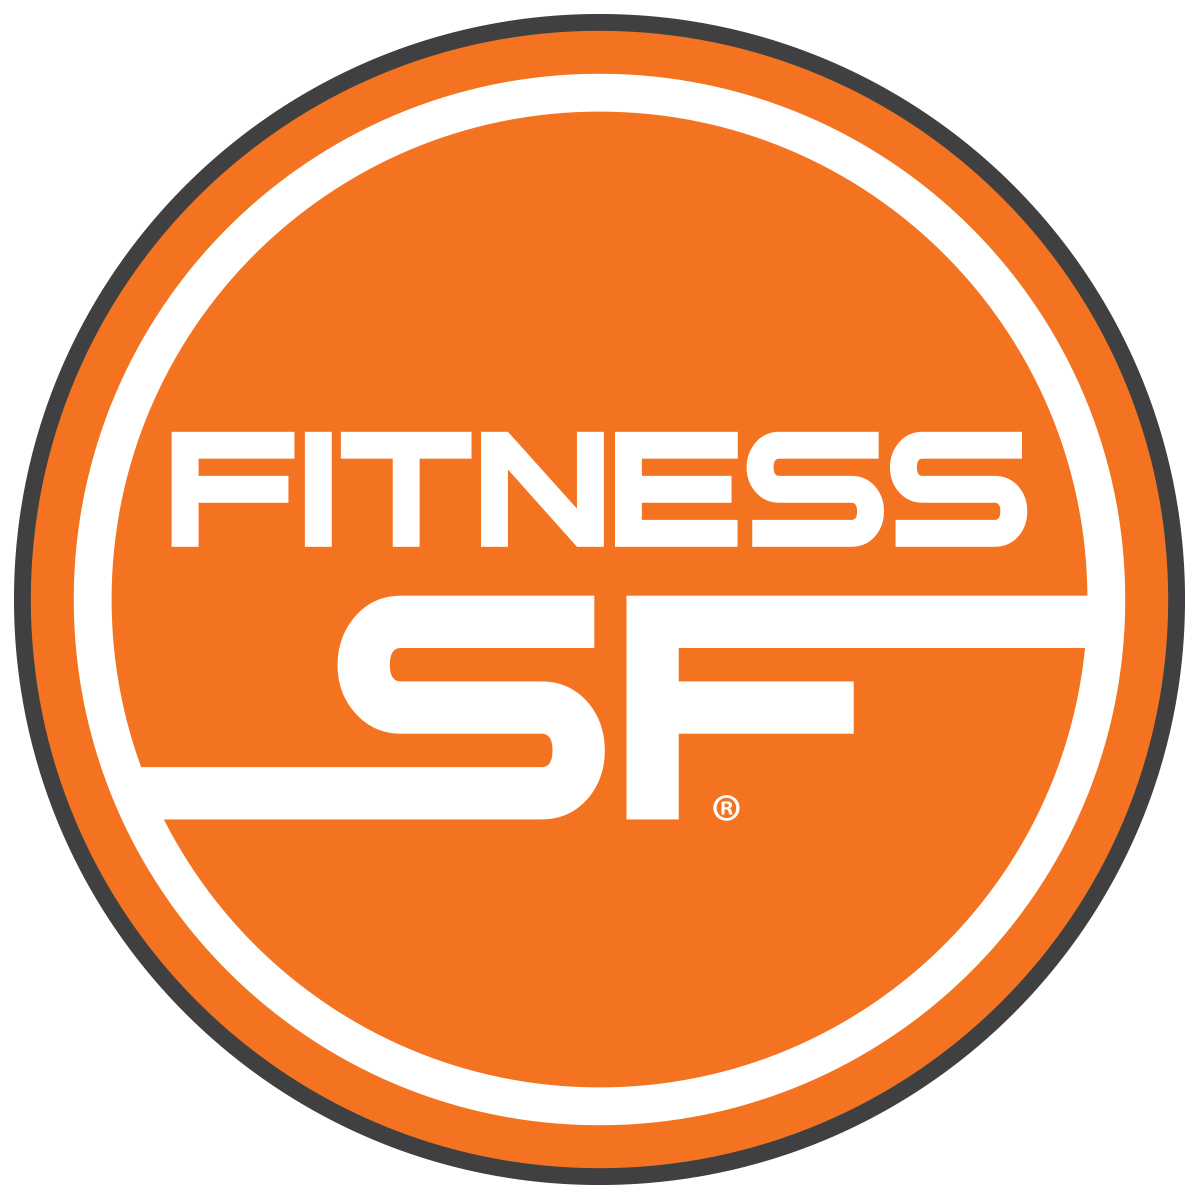 Fitness SF Marin